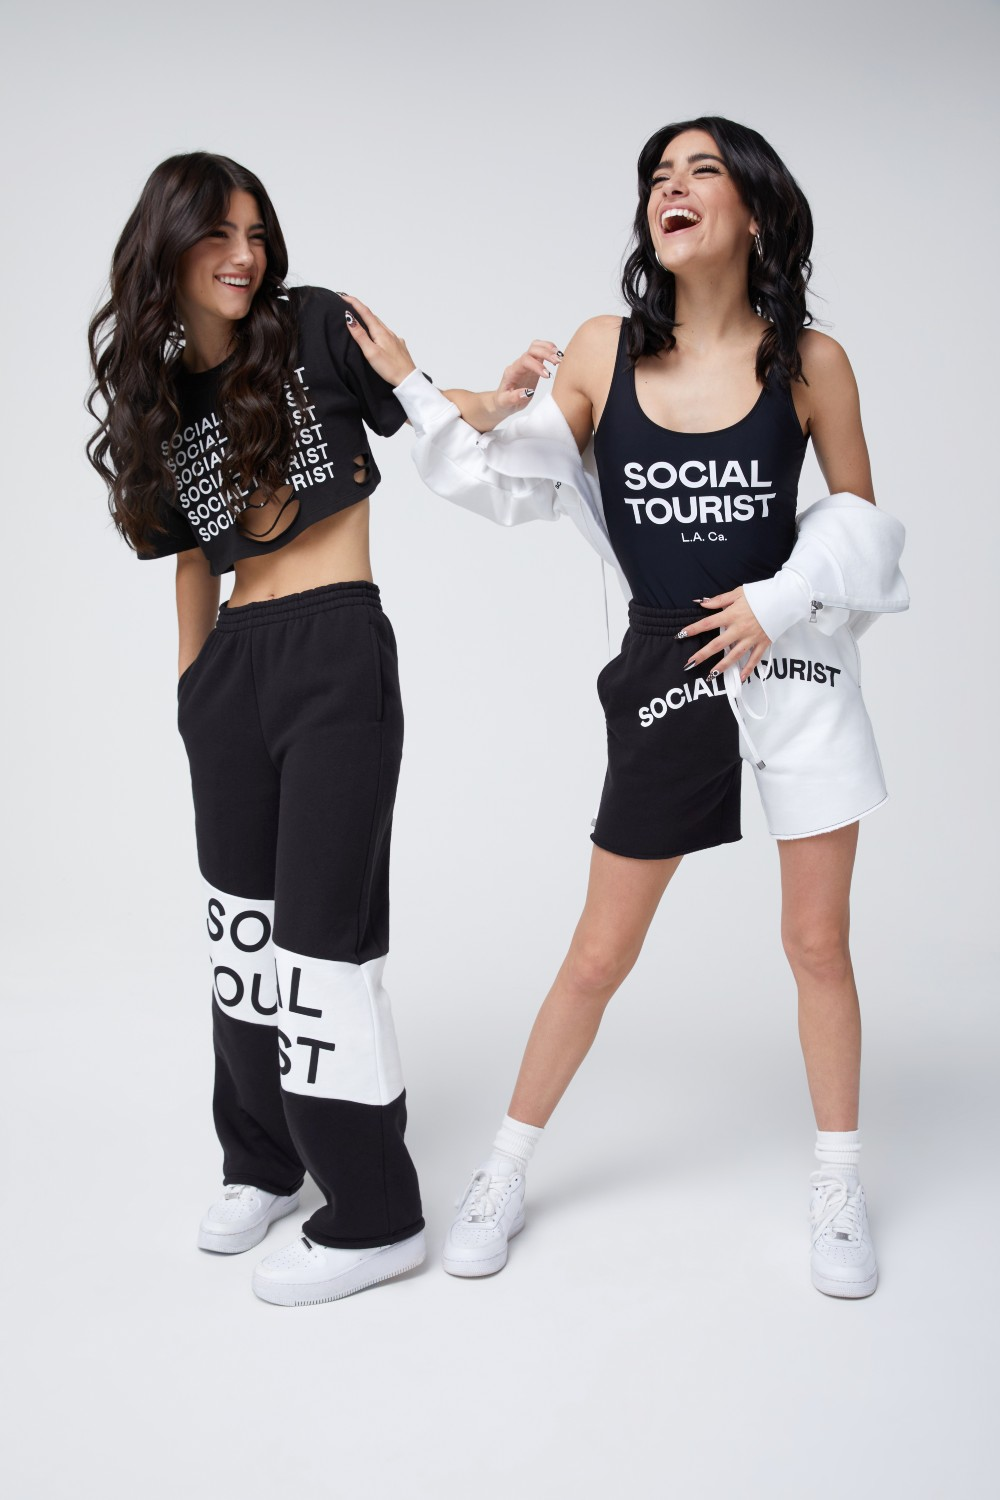 The Abercrombie & Fitch brand plans to launch Social Tourist this month with new product to drop approximately every month.